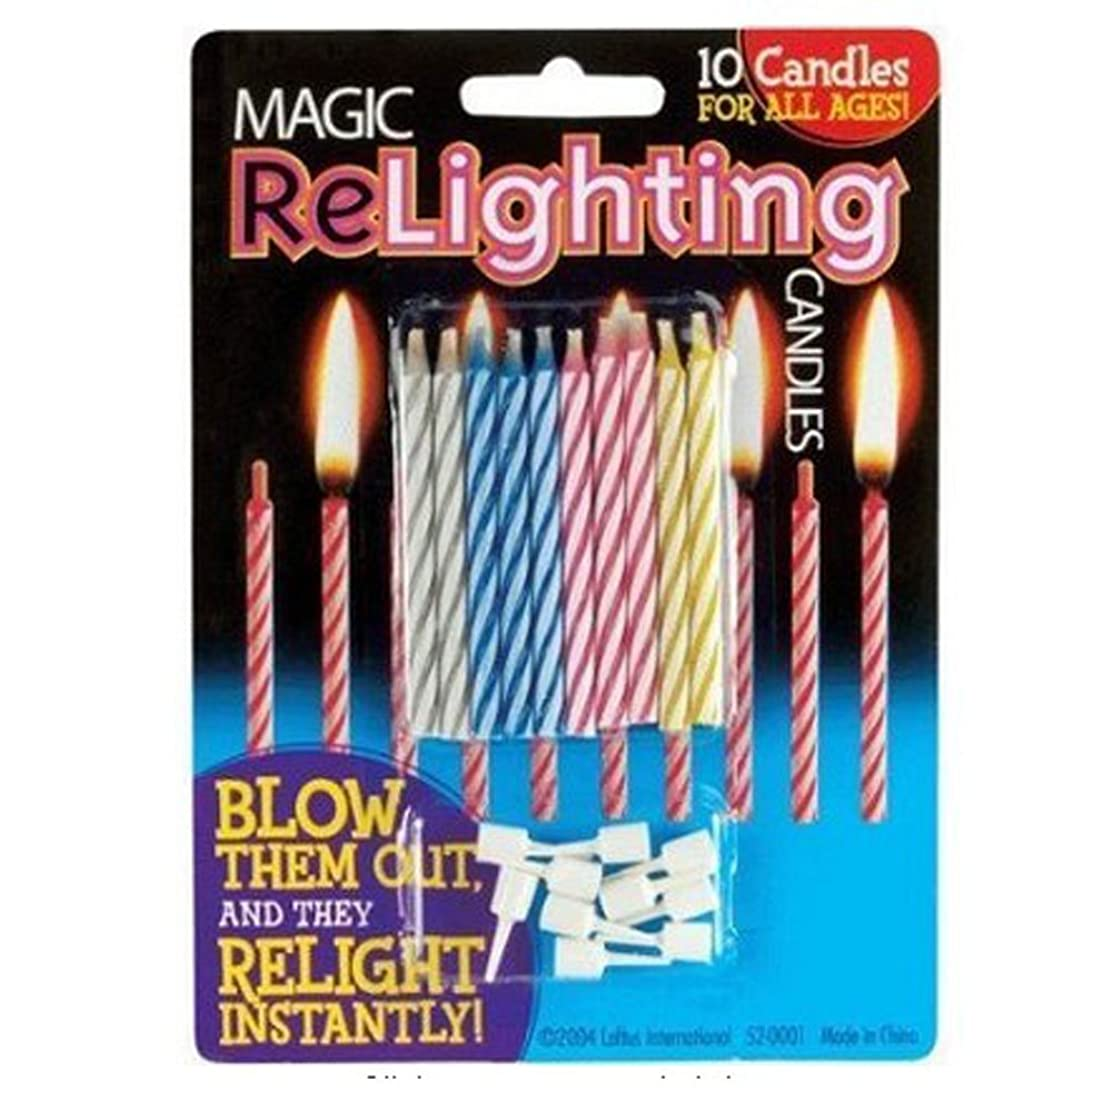 Magic Relighting Birthday Candles (20 Candles Per Package)